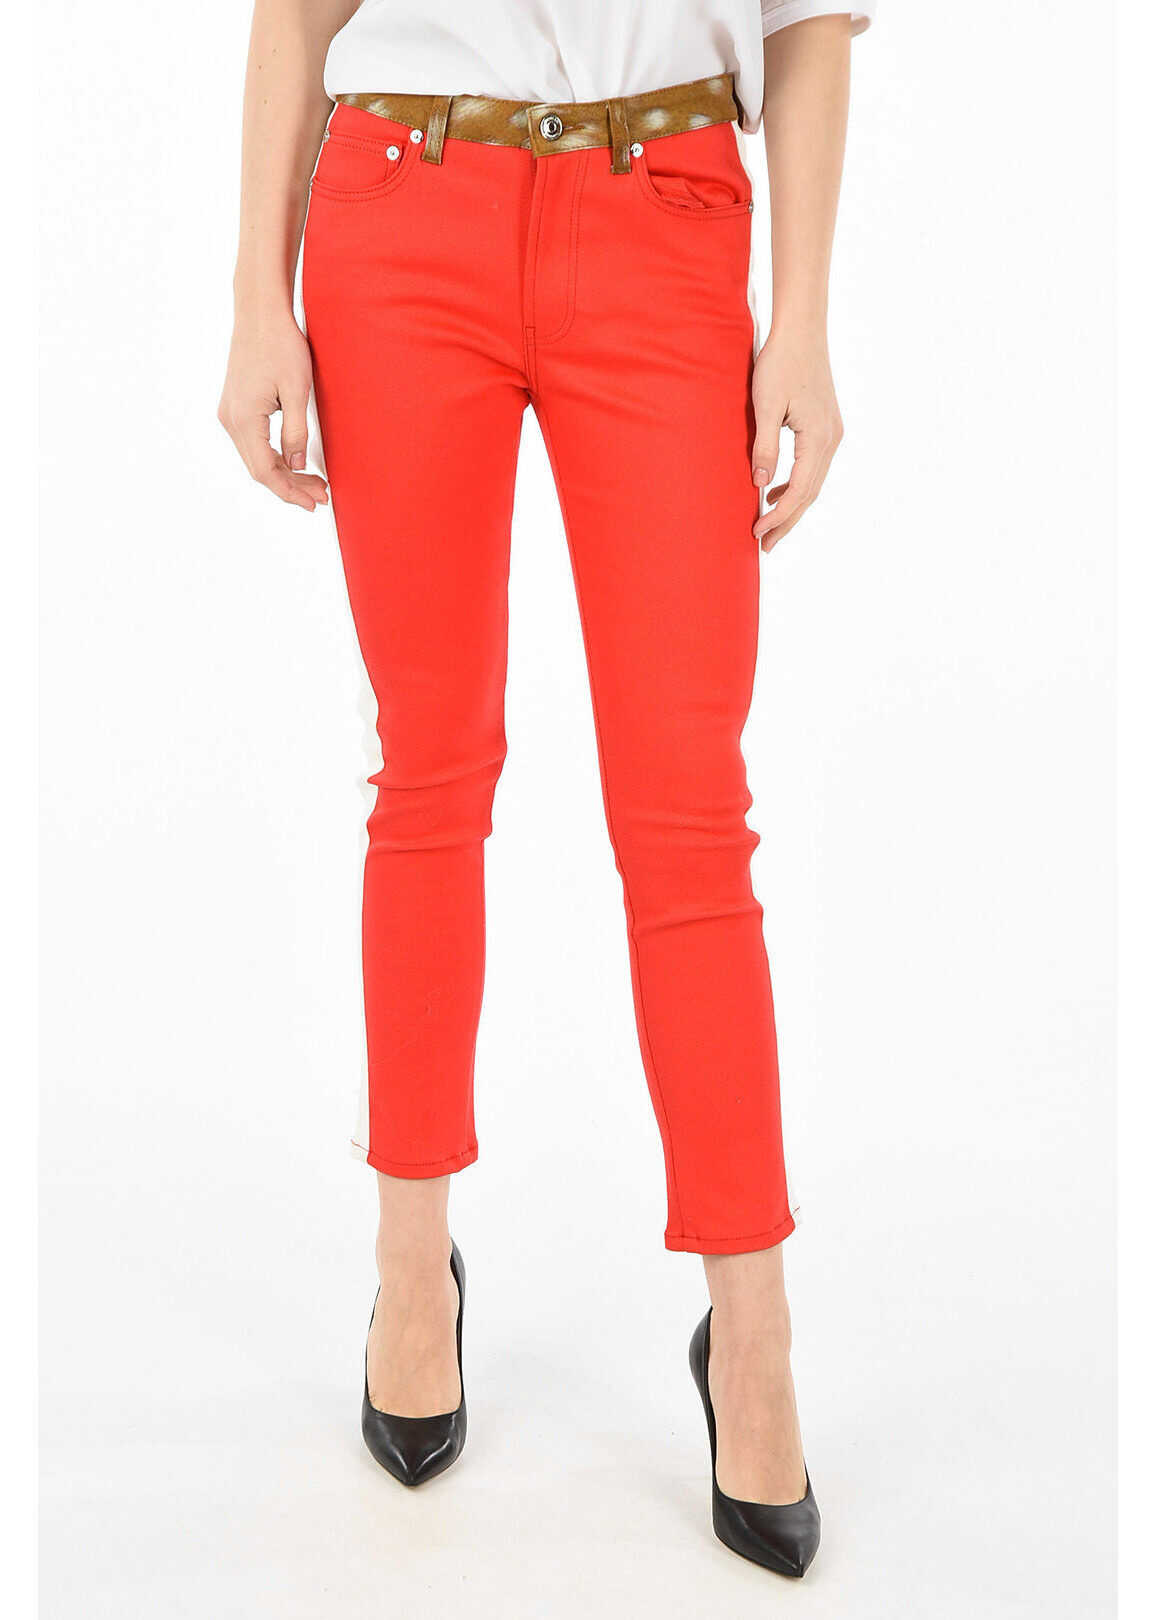 Burberry high-rise waist jeans RED